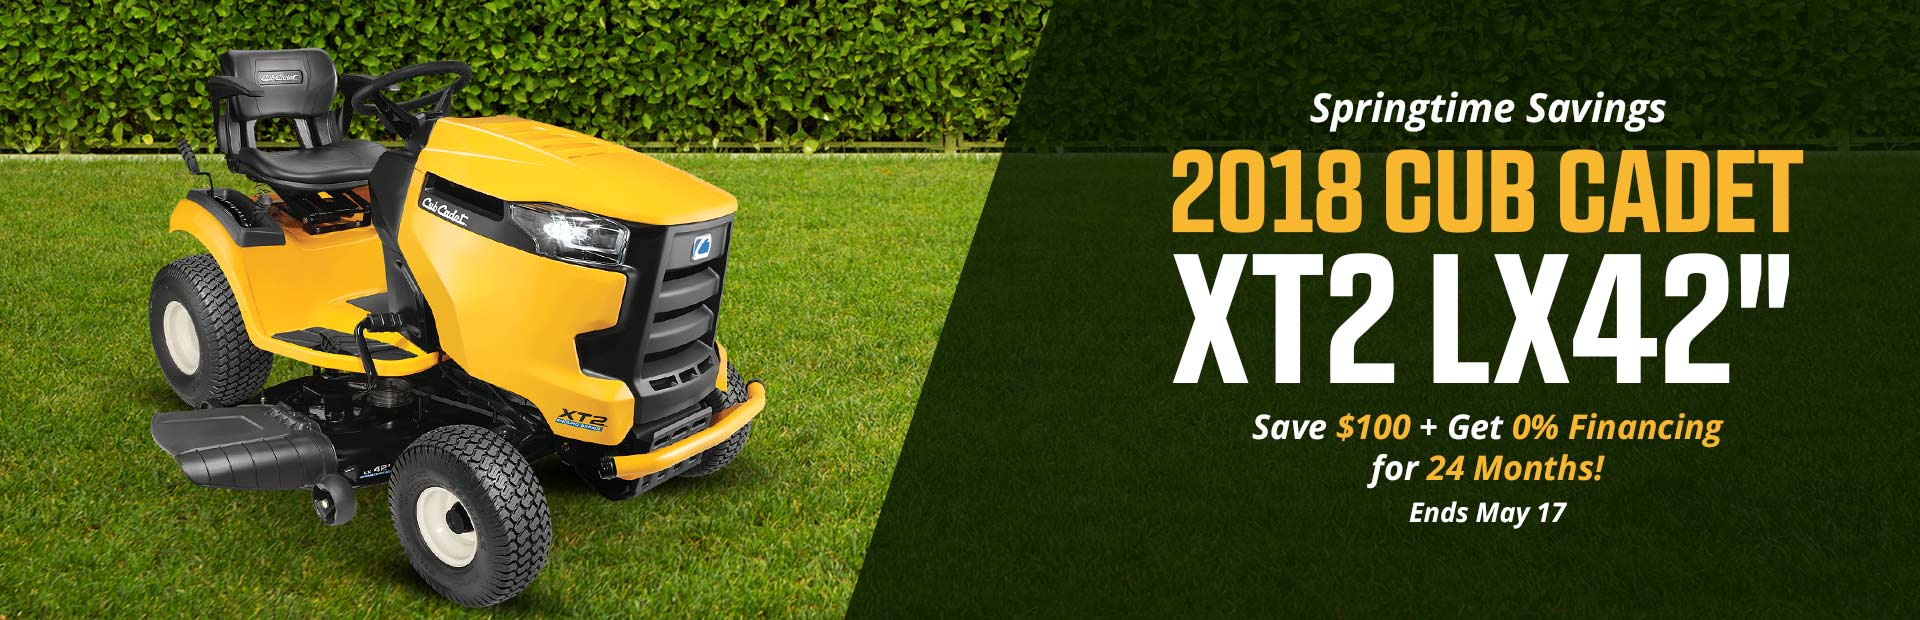 Springtime Savings on the 2018 Cub Cadet XT2 LX42'': Save $100 plus get 0% financing for 24 months! This offer ends May 17.